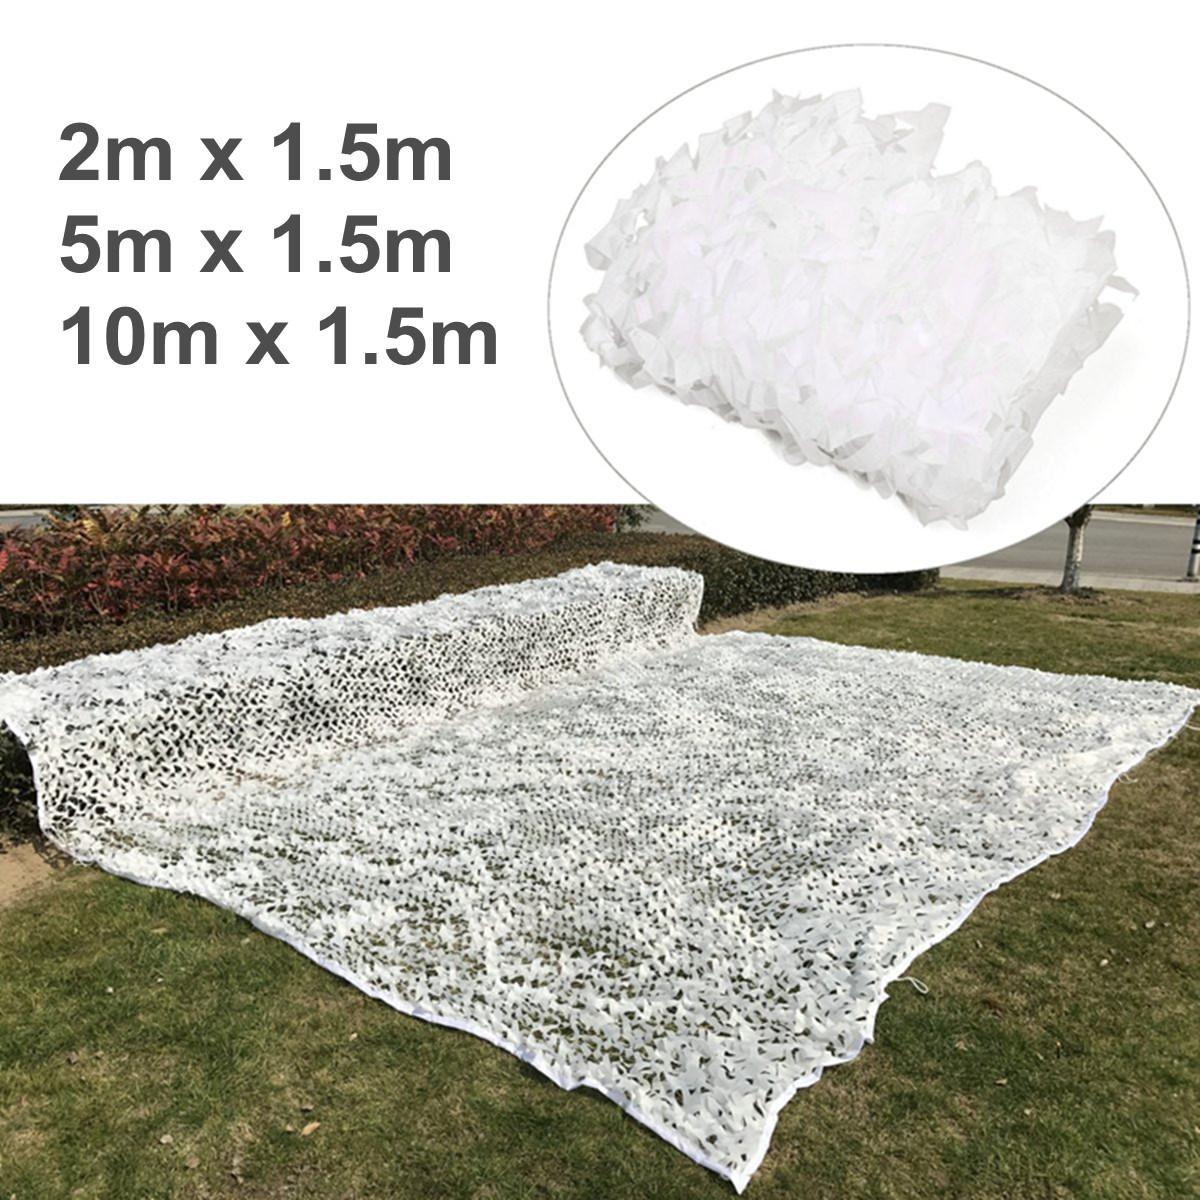 White Camouflage Net Outdoor Garden Sunshade Cloth Canopy Camping Party Decoration Photography Camo Tent Cover Shelter 3 Sizes